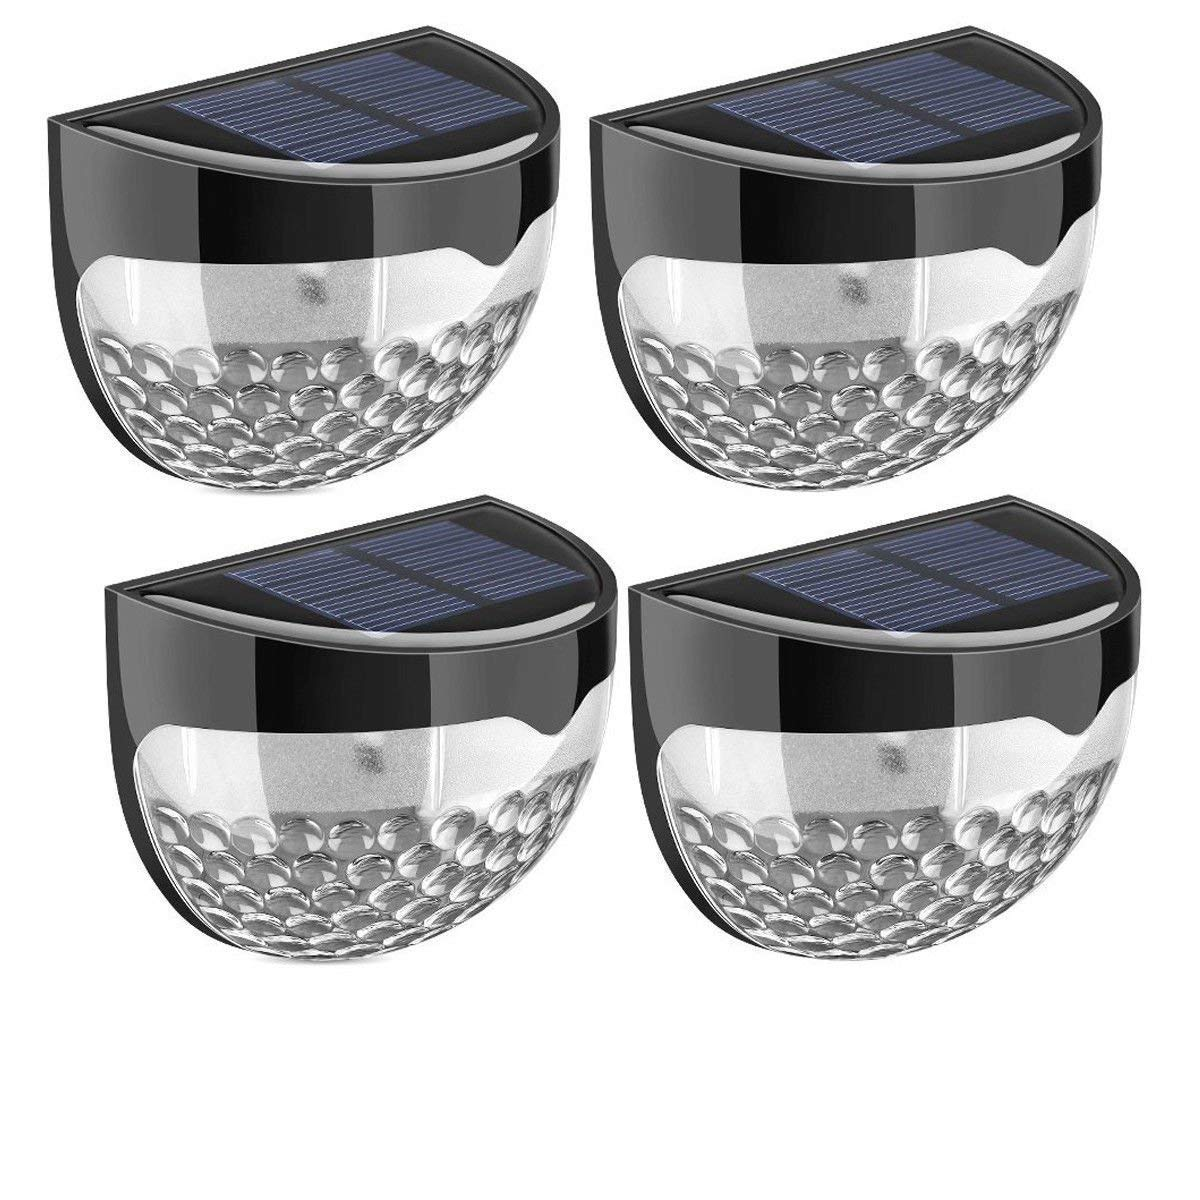 Fineway Pack Of 4 Solar Powered 6 Bright Led Door Fence Wall Lights Outdoor Garden Shed Lighting- Weather-Proof Ip65 Protection Grade, Dust-Resistant, Splash-Resistant, Very Suitable For Outdoor Use.